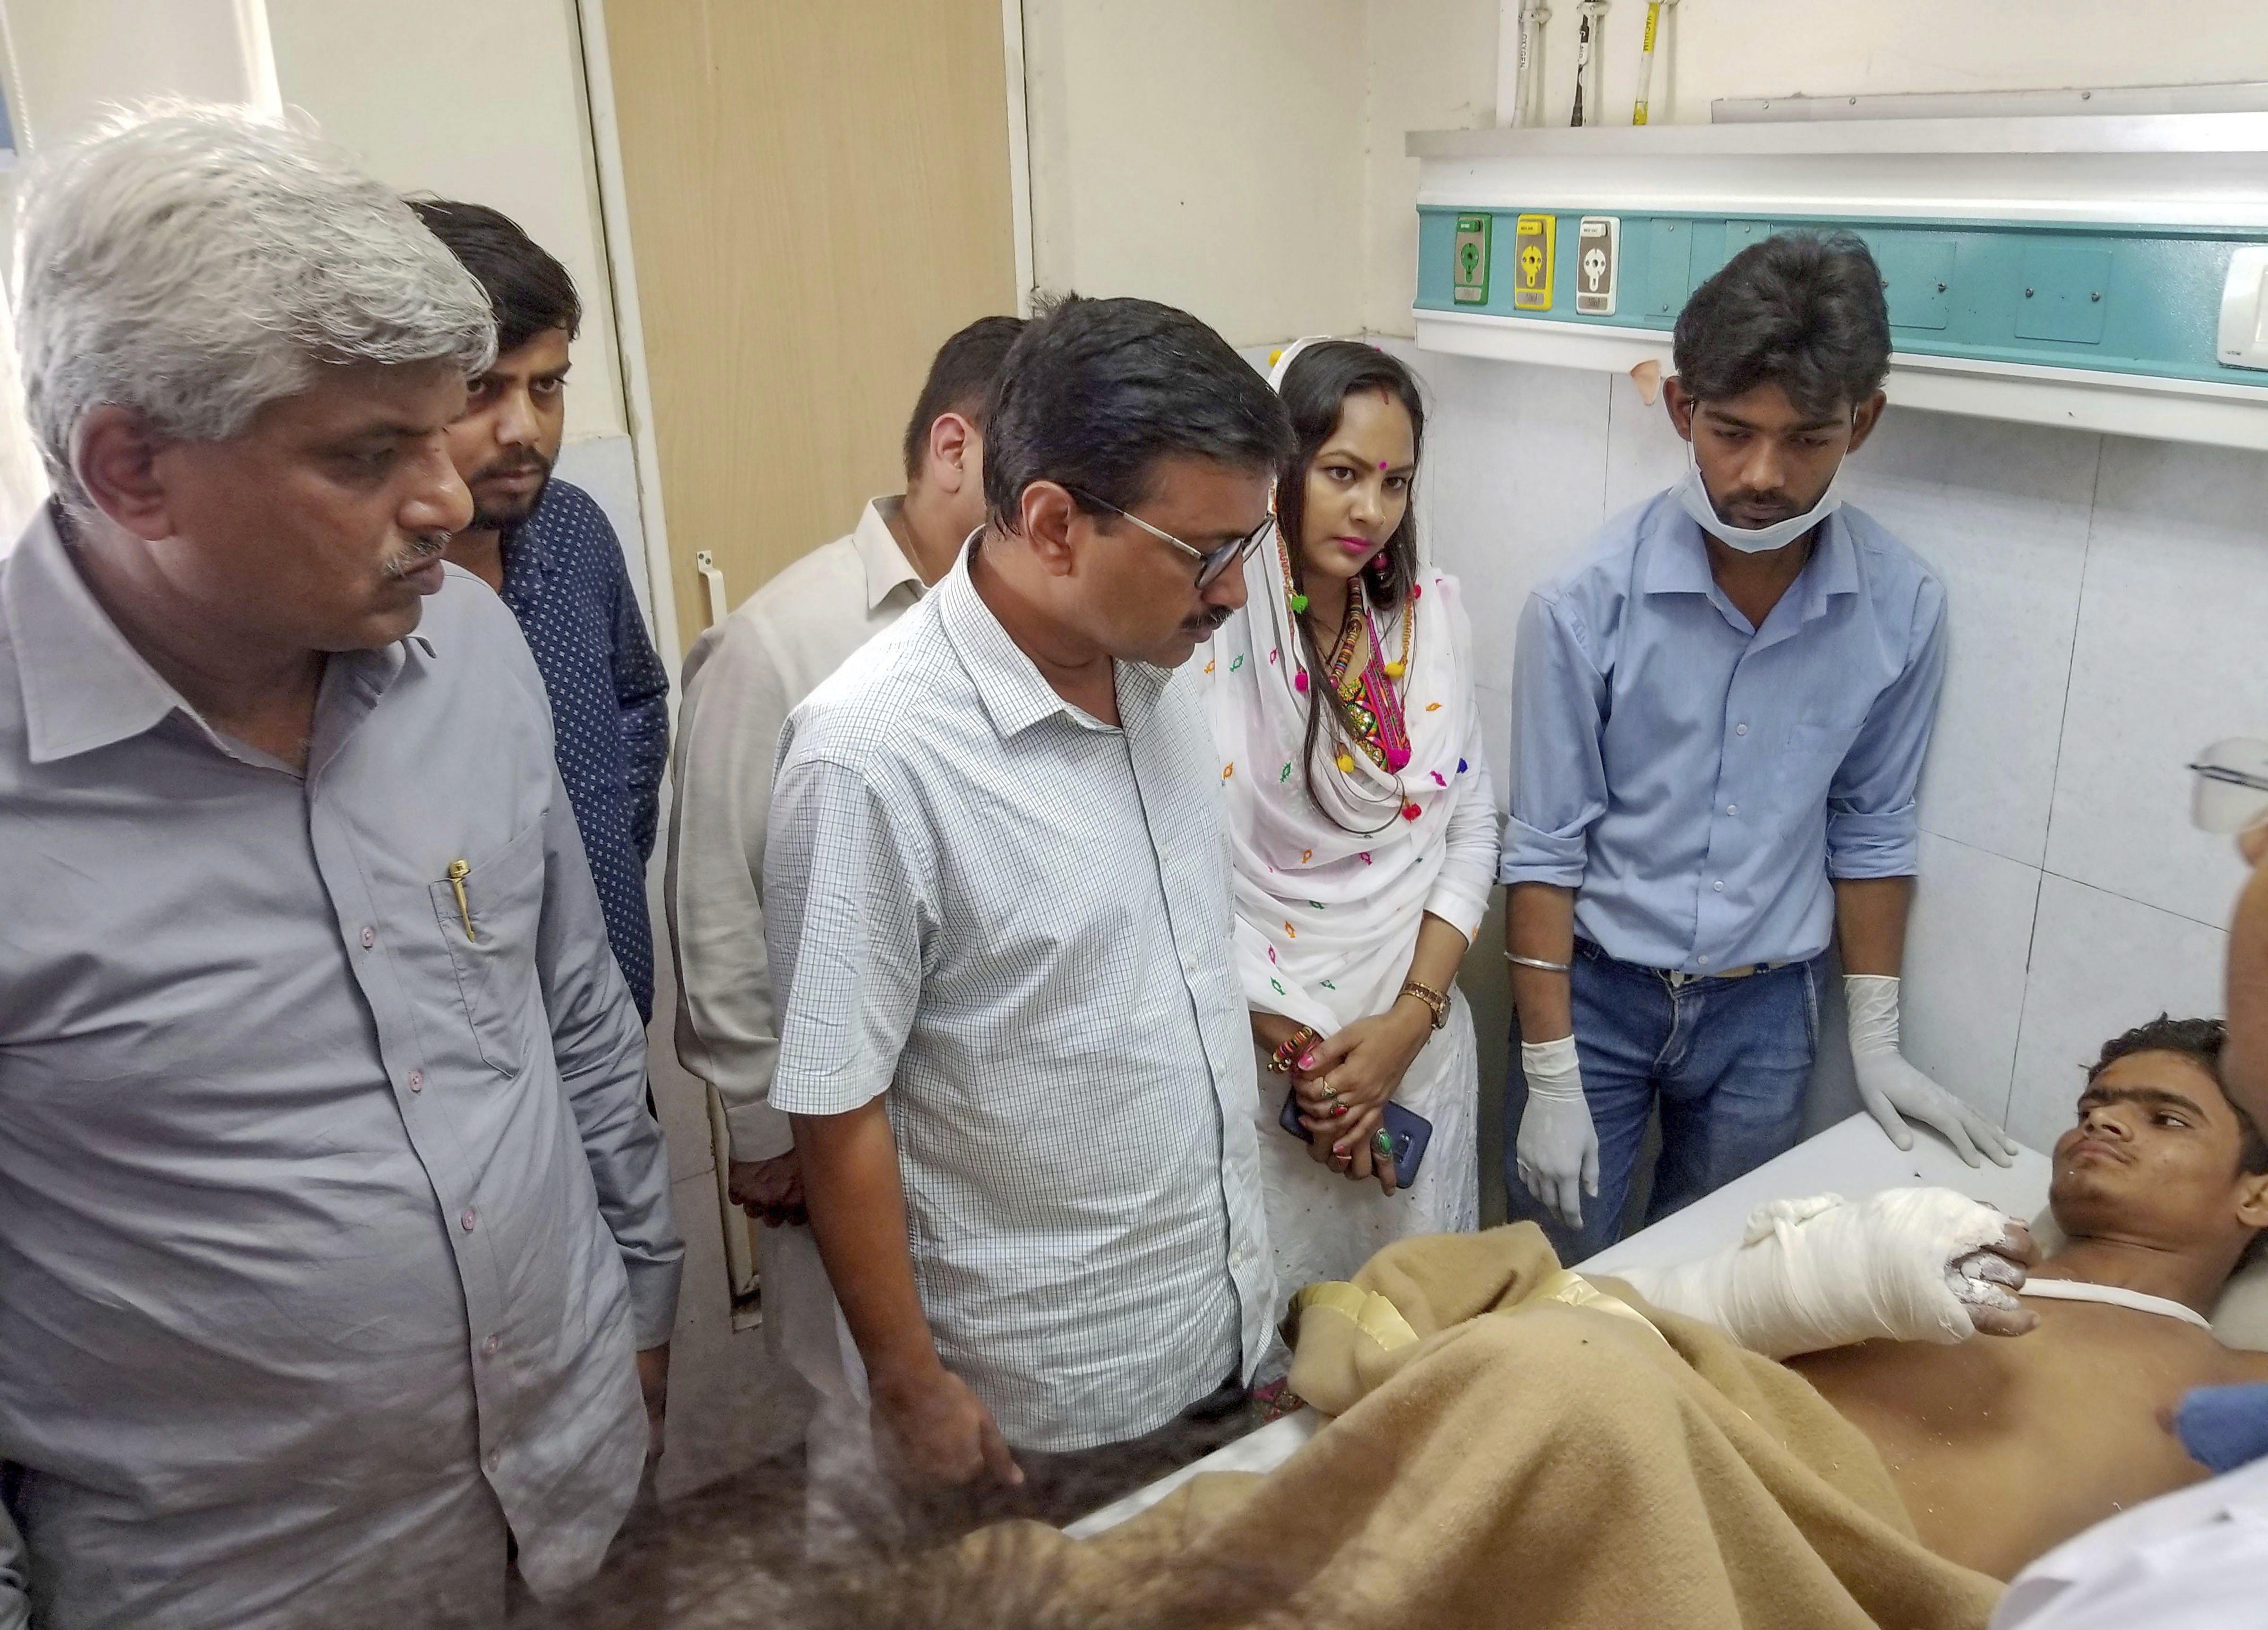 Delhi Chief Minister Arvind Kejriwal visits a victim of a building collapse in Ashok Vihar, at a hospital in New Delhi - PTI